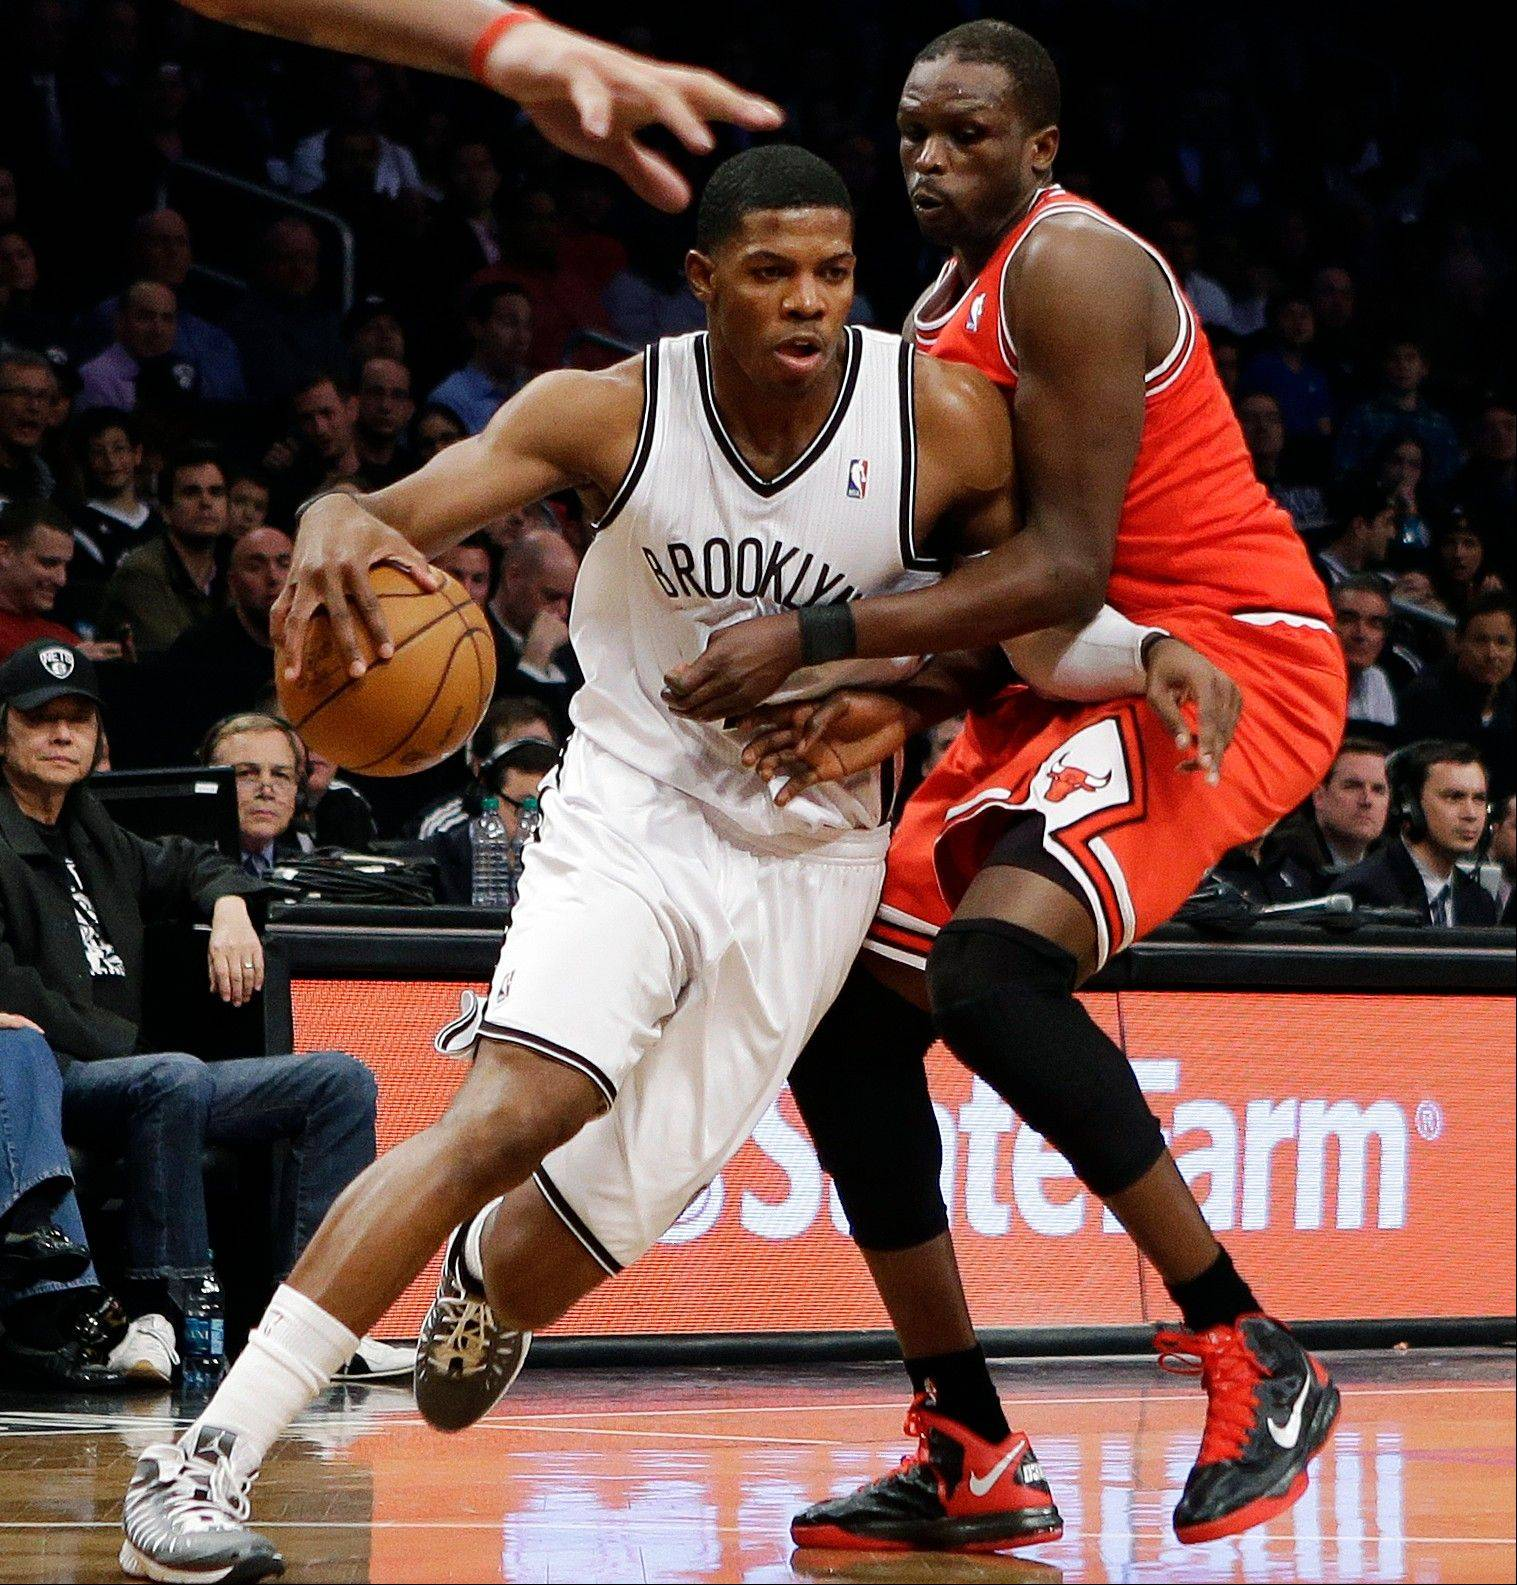 Brooklyn Nets guard Joe Johnson, left, is questionable for Game 3 against Chicago due to a foot injury, plantar fasciitus.